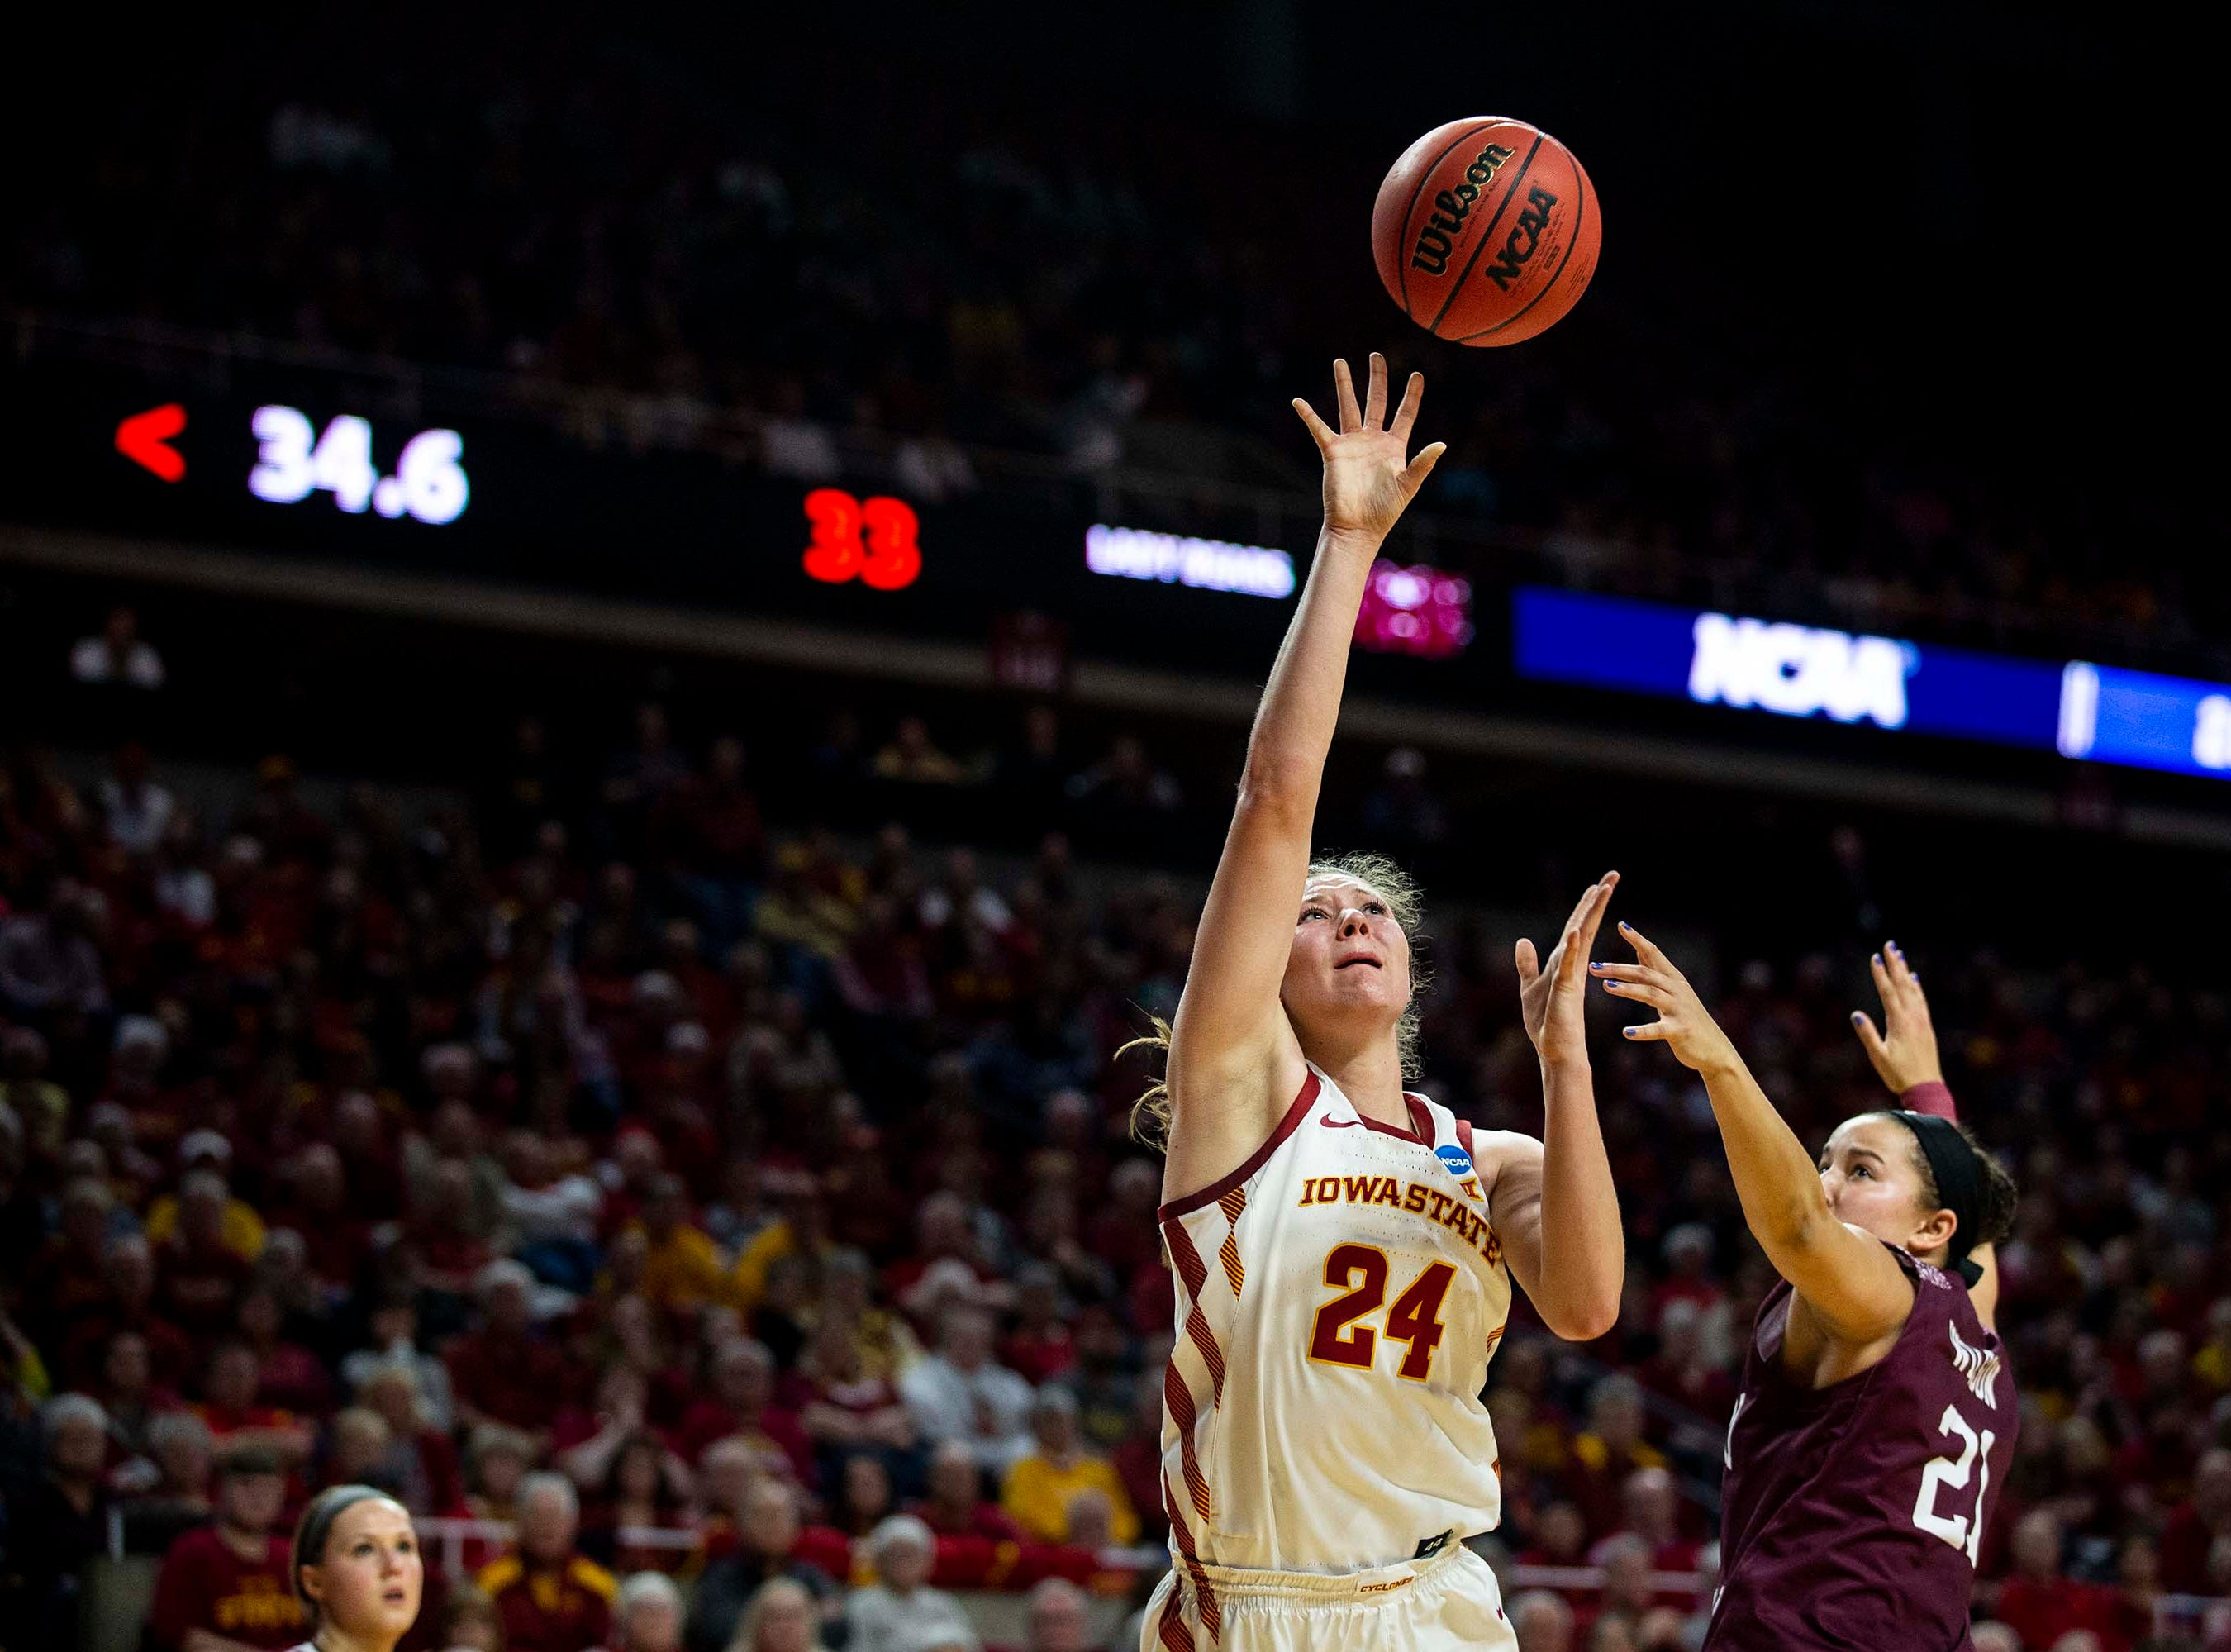 Iowa State's Ashley Joens shoots the ball during the NCAA Tournament second-round match-up between Iowa State and Missouri State on Monday, March 25, 2019, in Hilton Coliseum, in Ames, Iowa.